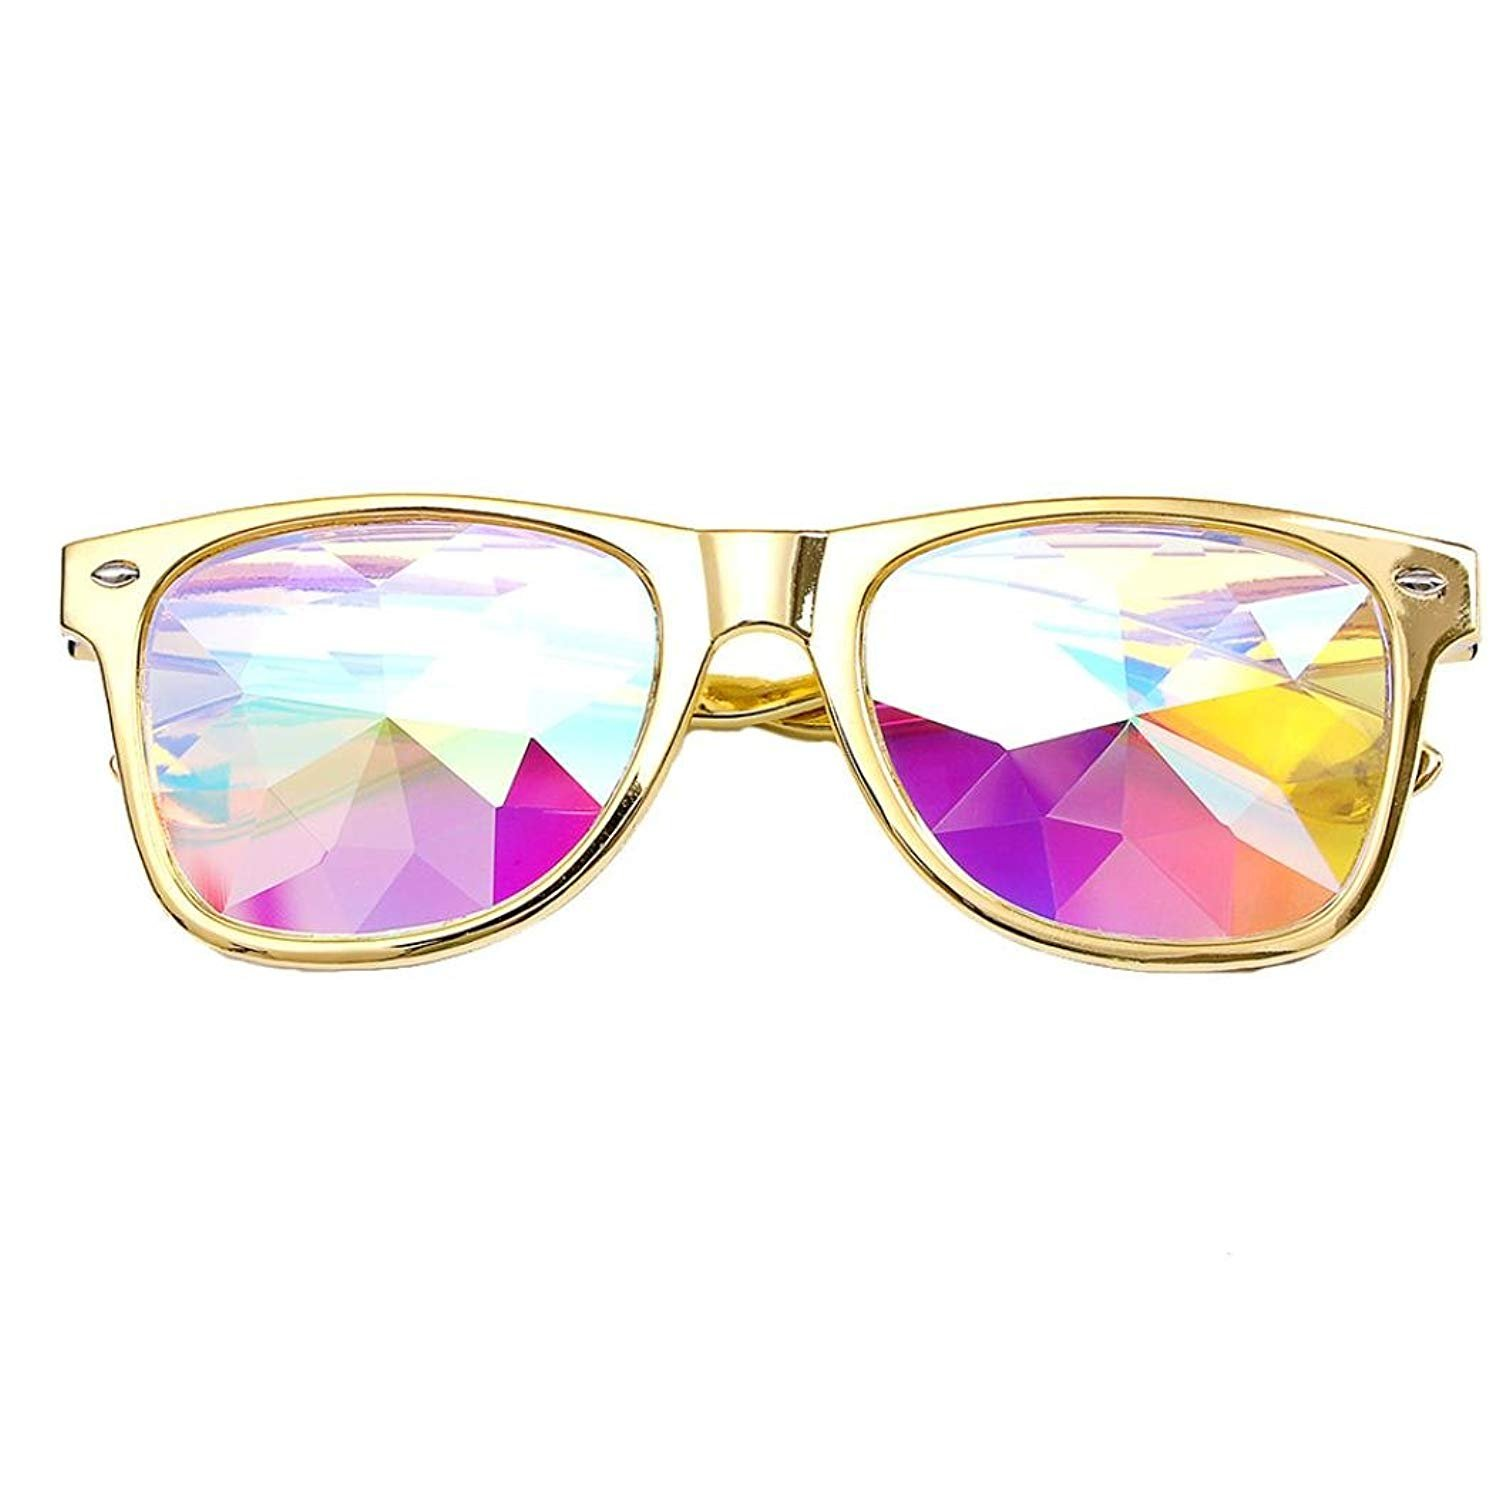 Kaleidoscope Sunglasses,Rave Festival Party EDM Rainbow Crystal Lenses Sunglasses